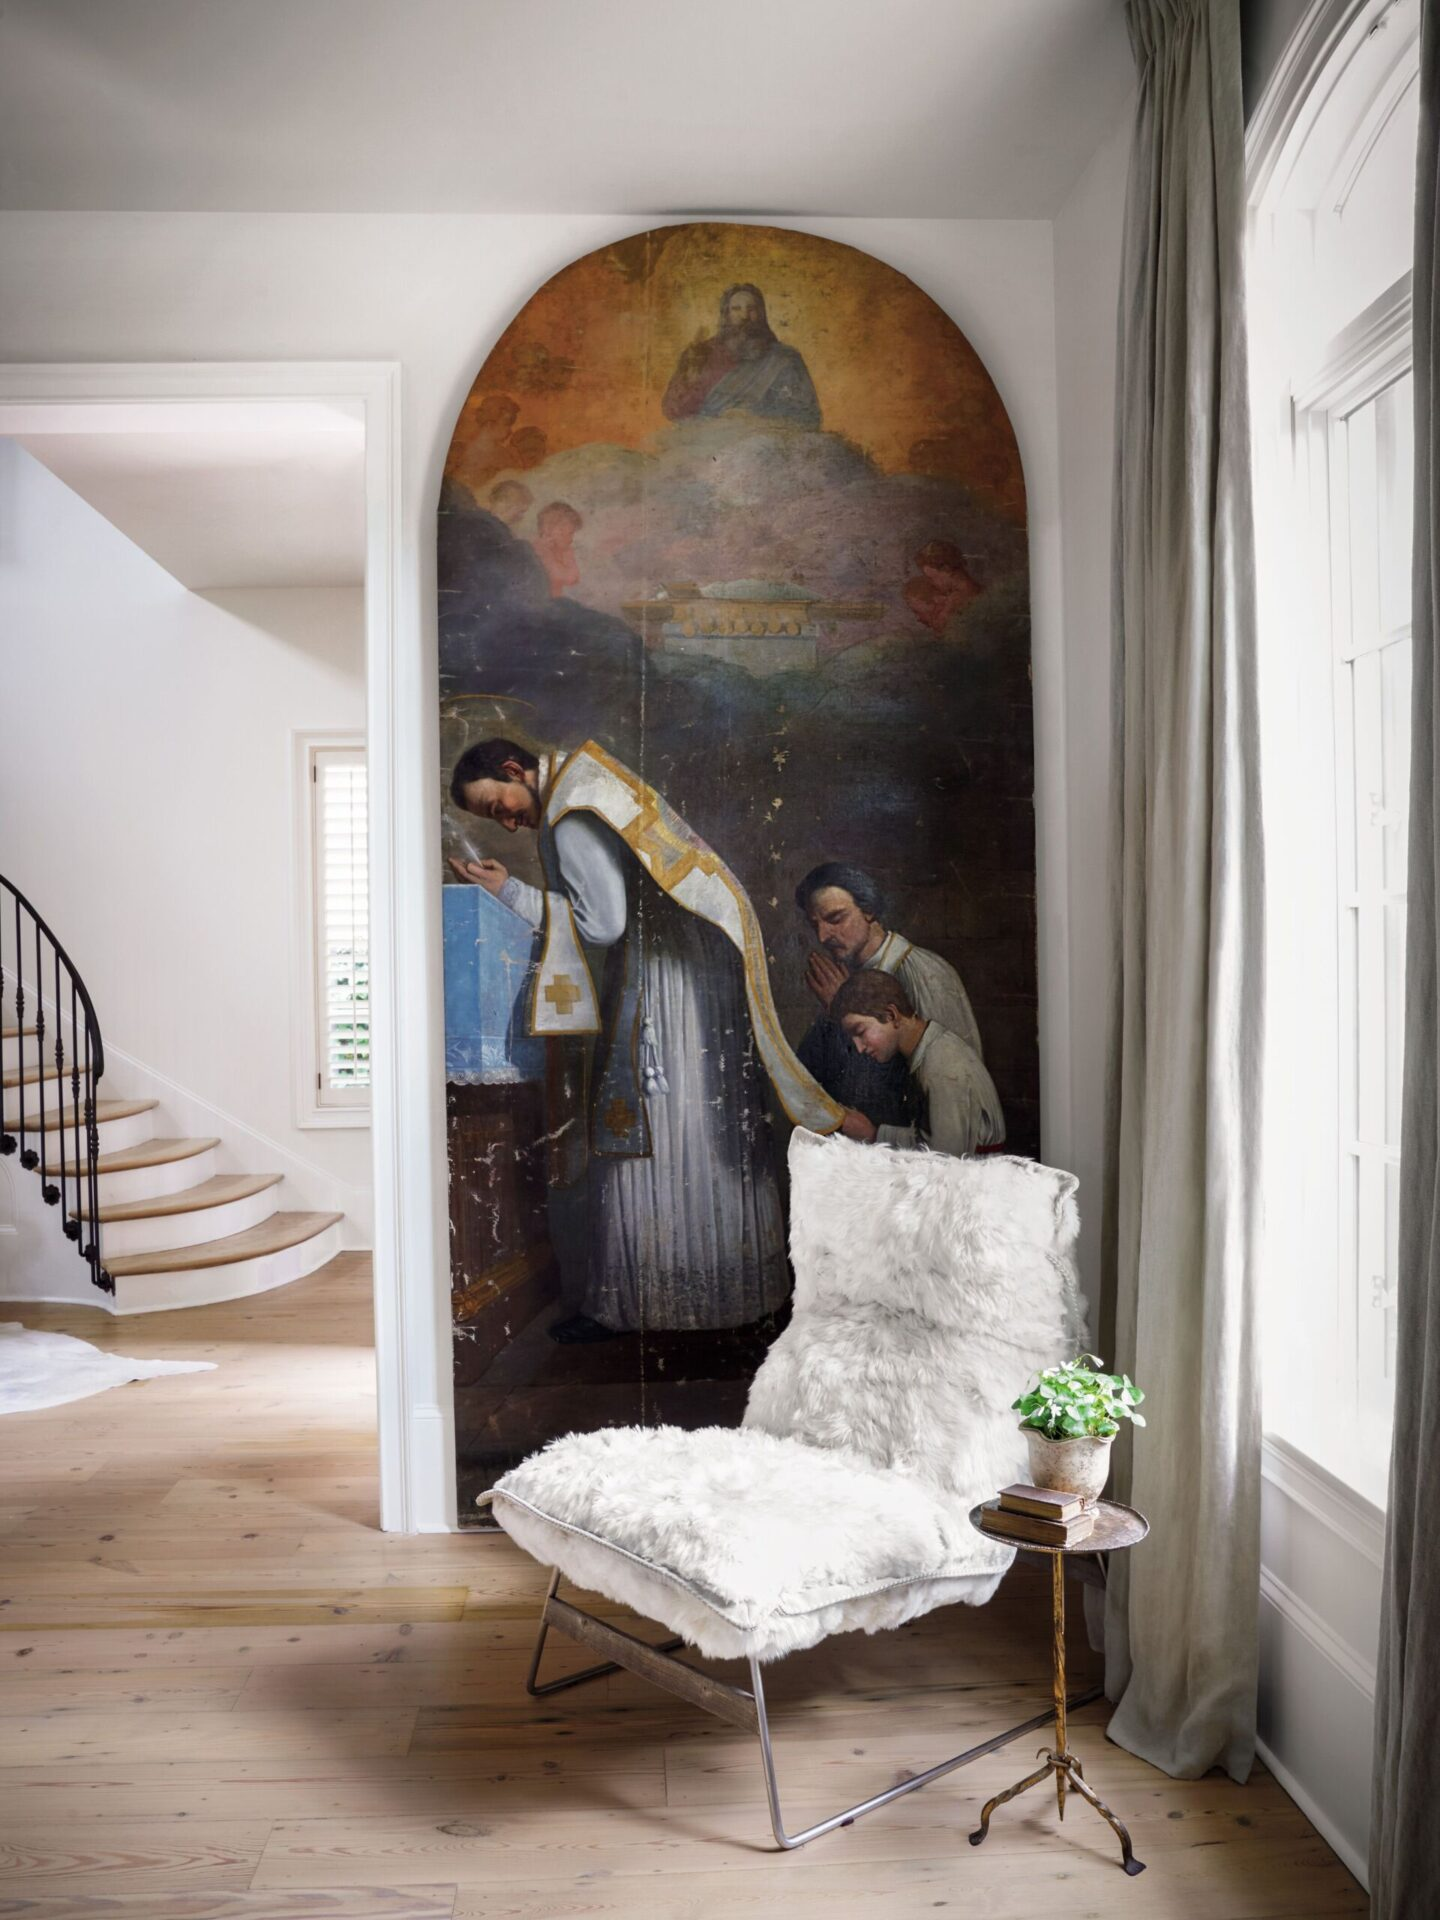 Two massive 19th century ecclesiastical paintings by Victor Mazies mix with a modern alpaca-covered chair in a living room designed by Tara Shaw. #oldworldstyle #tarashaw #religiousart #europeanantiques #interiordesign #rusticelegance